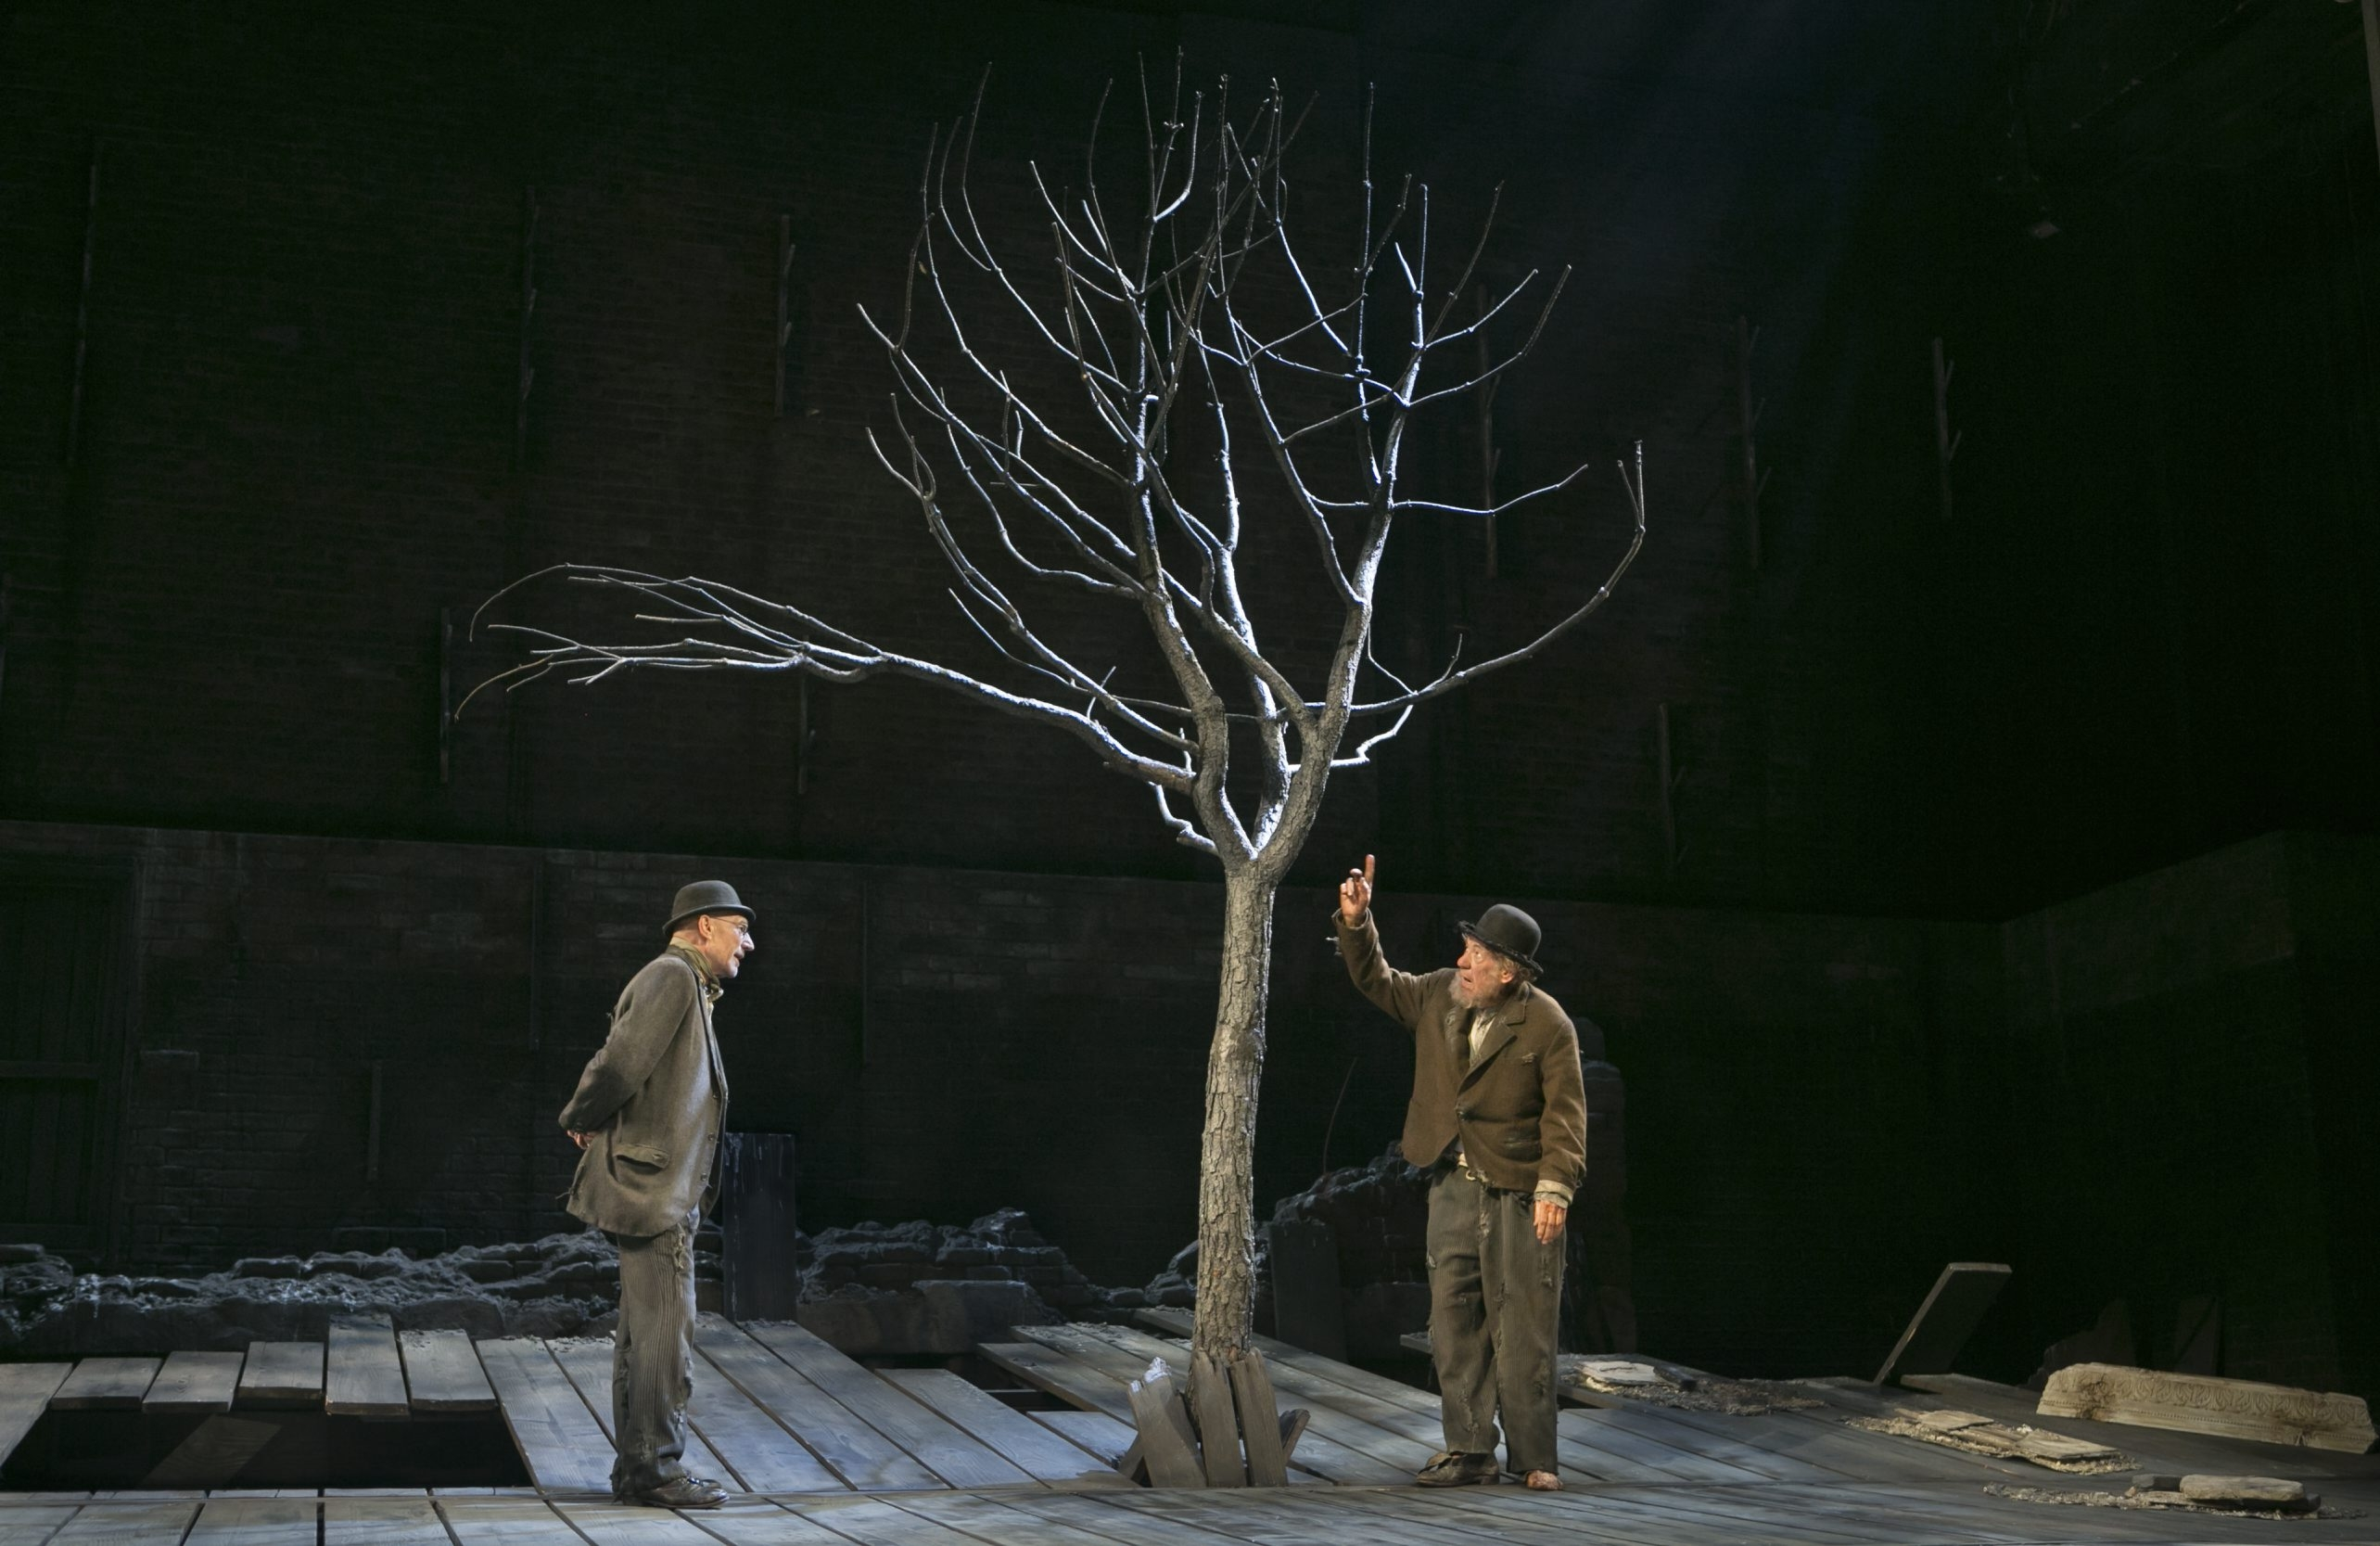 """Patrick Stewart, left, and Ian McKellen in Samuel Beckett's """"Waiting For Godot"""" at the Cort Theater in New York in 2013.  Note the stage setting, """"A Country Road, A Tree."""" A new novel by Jo Baker probes the Nobel Prize winner's early days in Paris as part of the resistance during the Nazi occupation."""